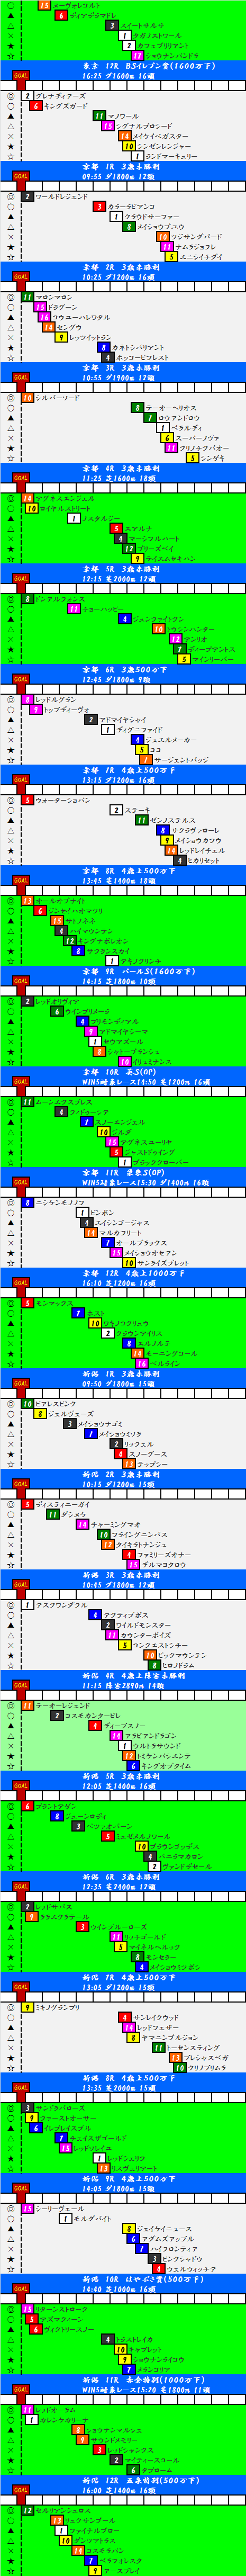 2015051702.png